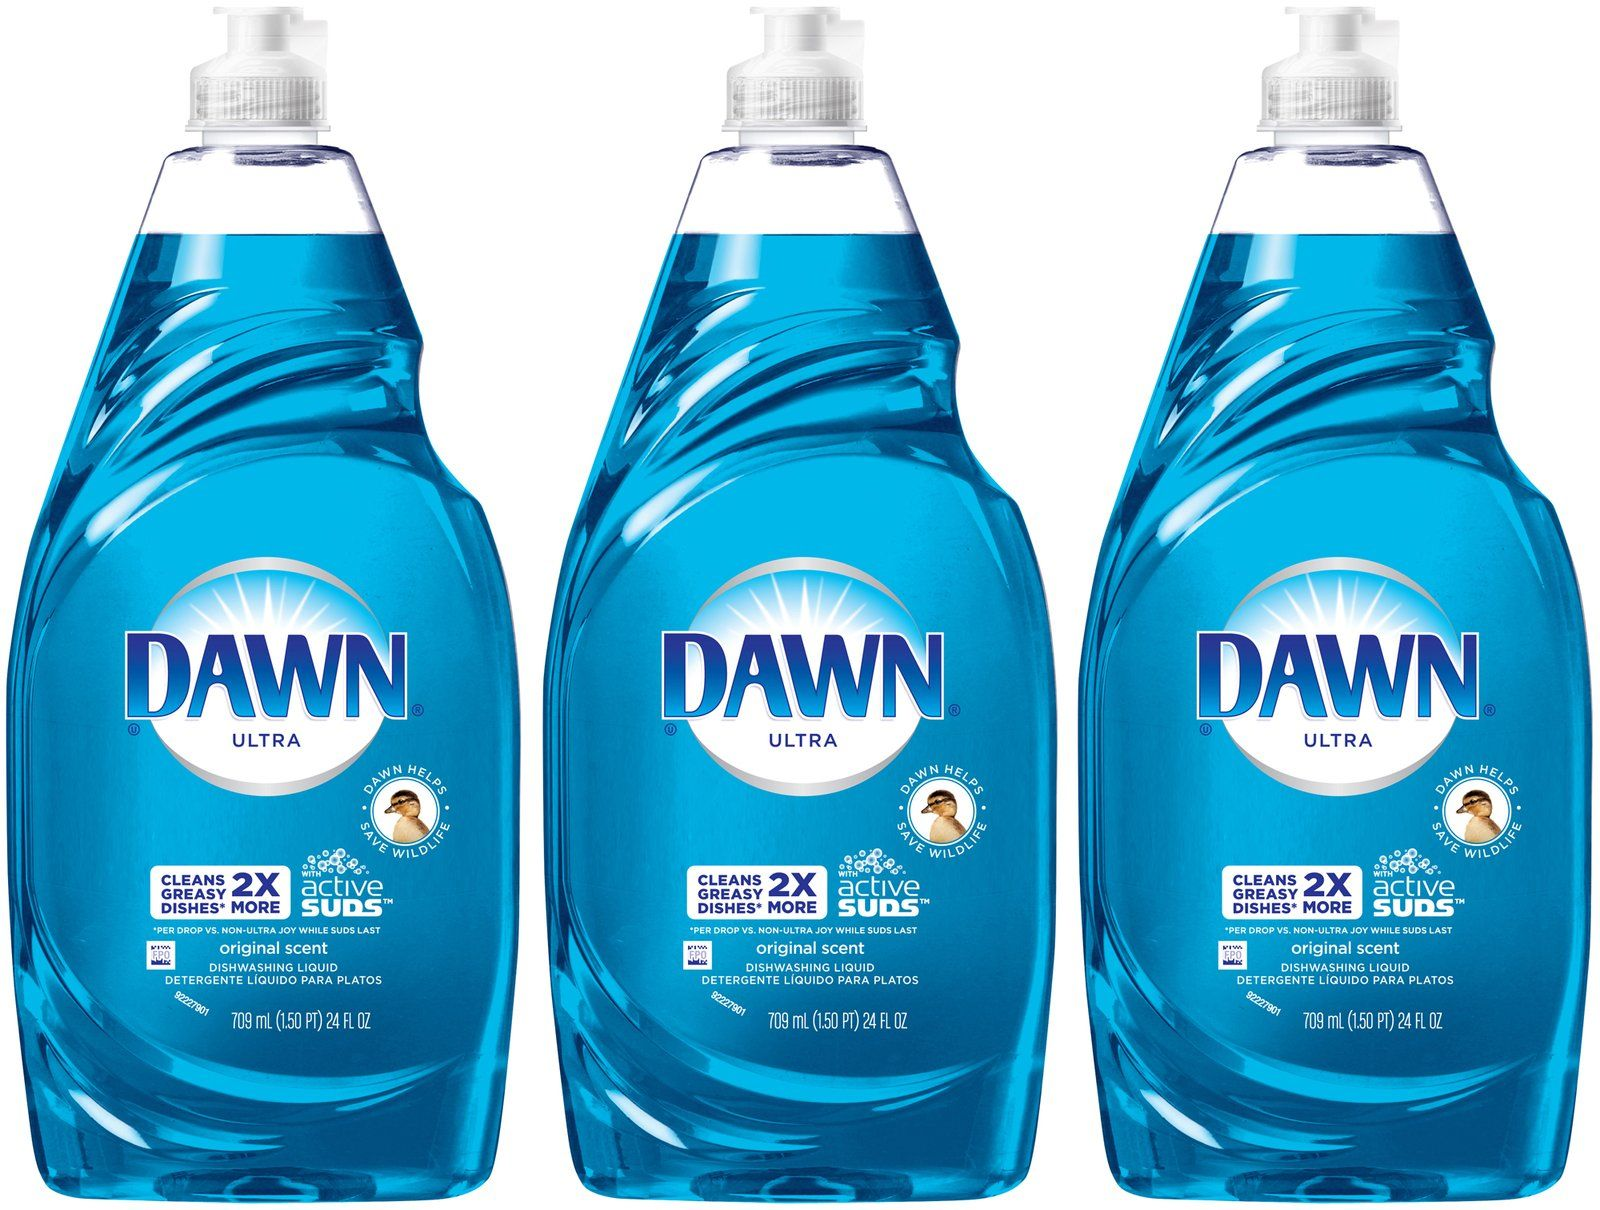 Can You Wash Your Dog With Dawn Dish Detergent 28 Uses For Dawn Dish Soap Hacks That Can Make Your Life Easier With Images Kill Fleas On Dogs Dog Owners Dog Wash